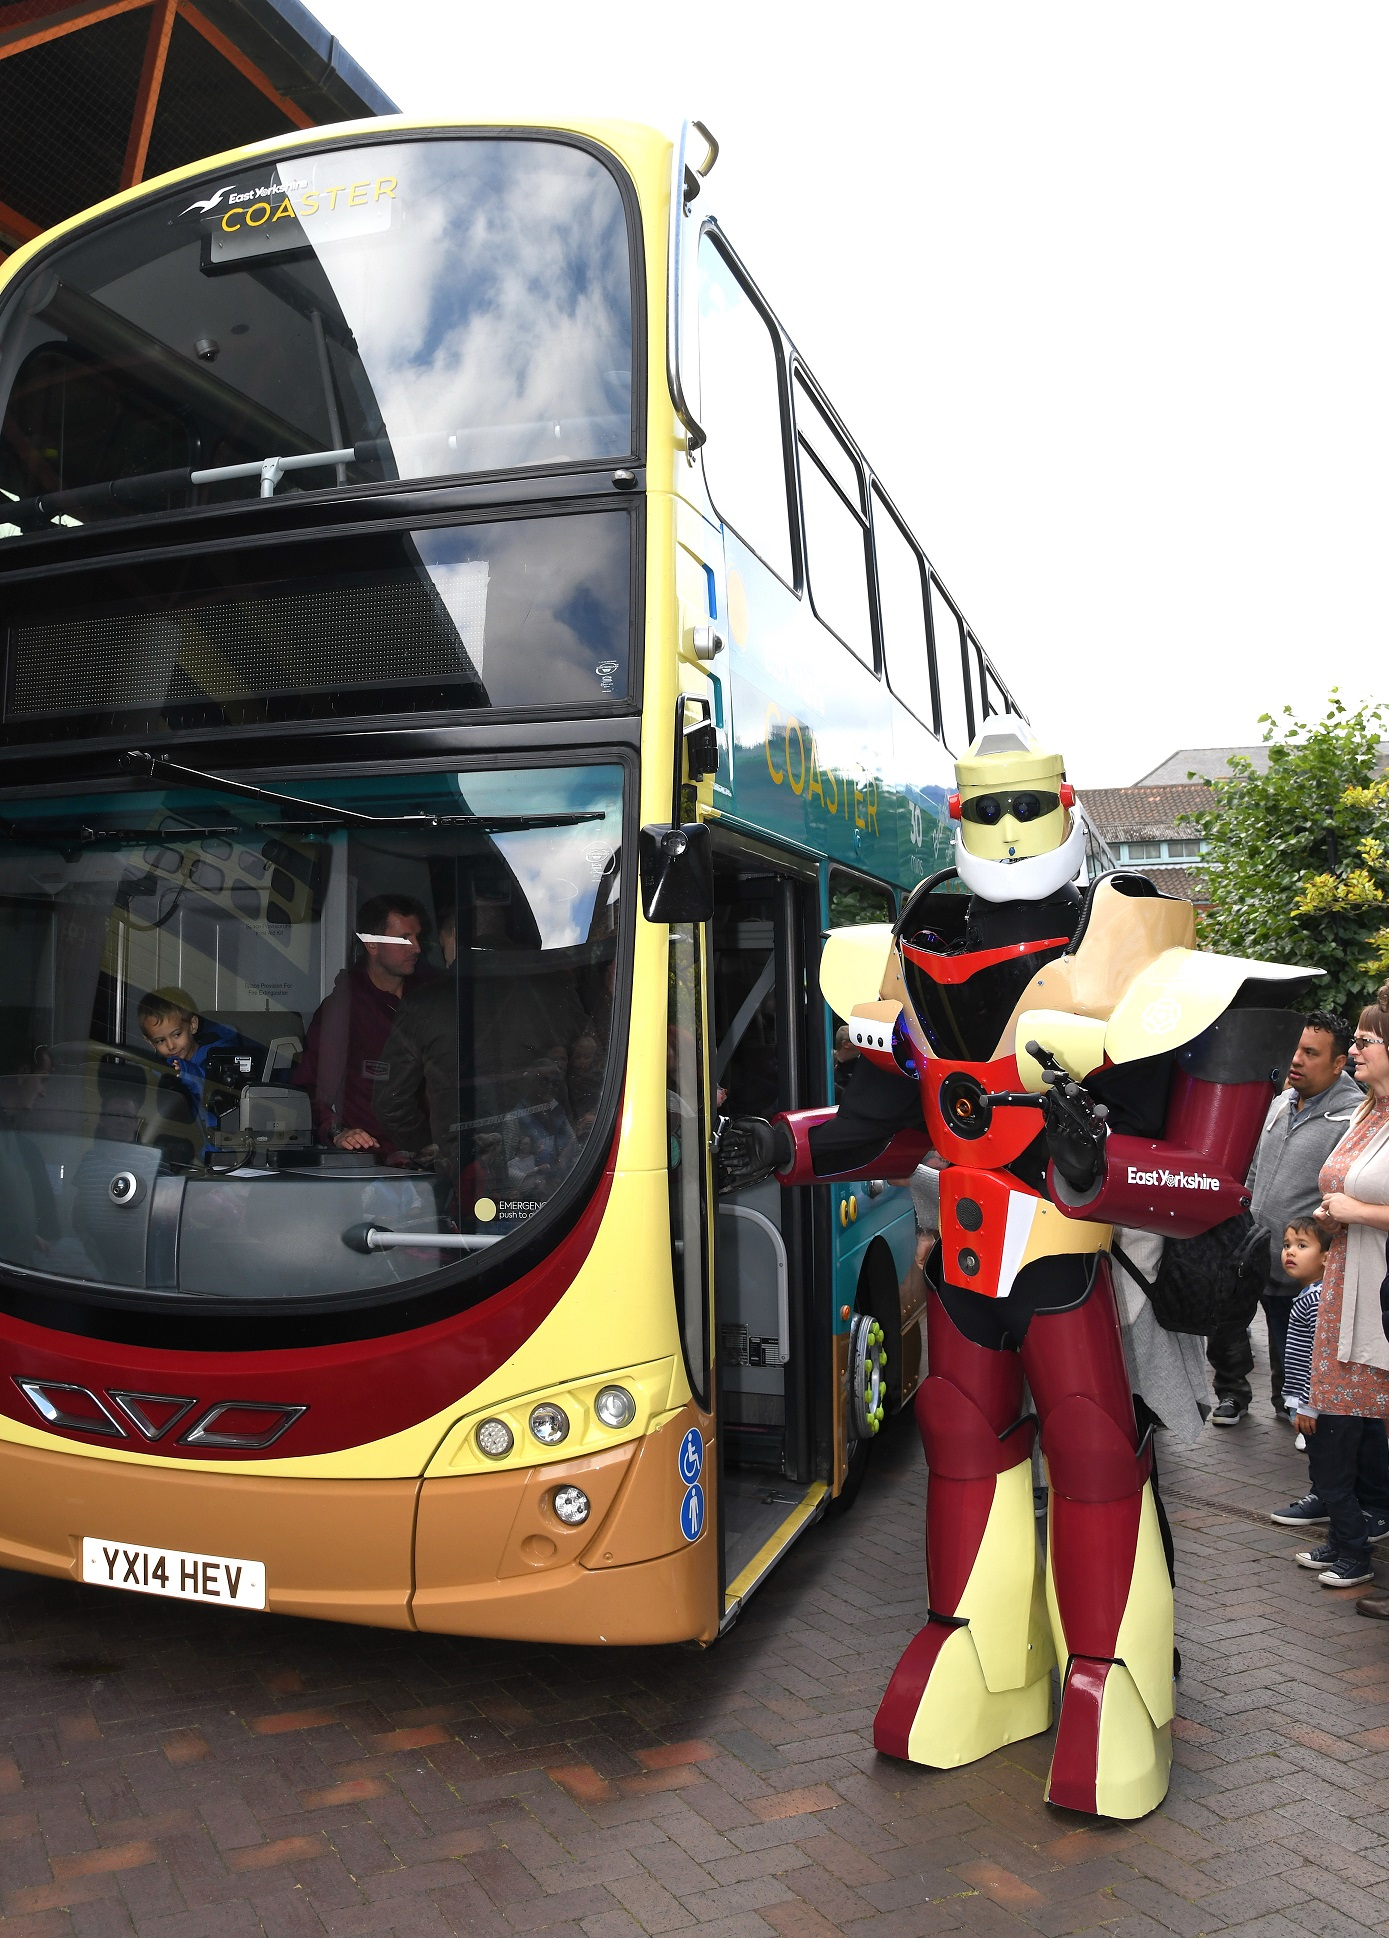 A large colourful robot stands by a bus